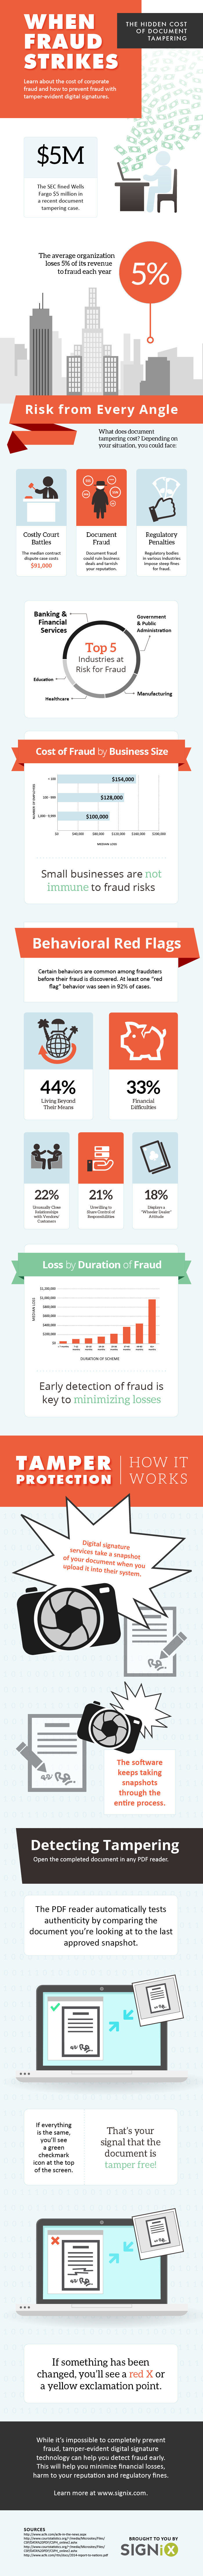 tamper-evidence-infographic03